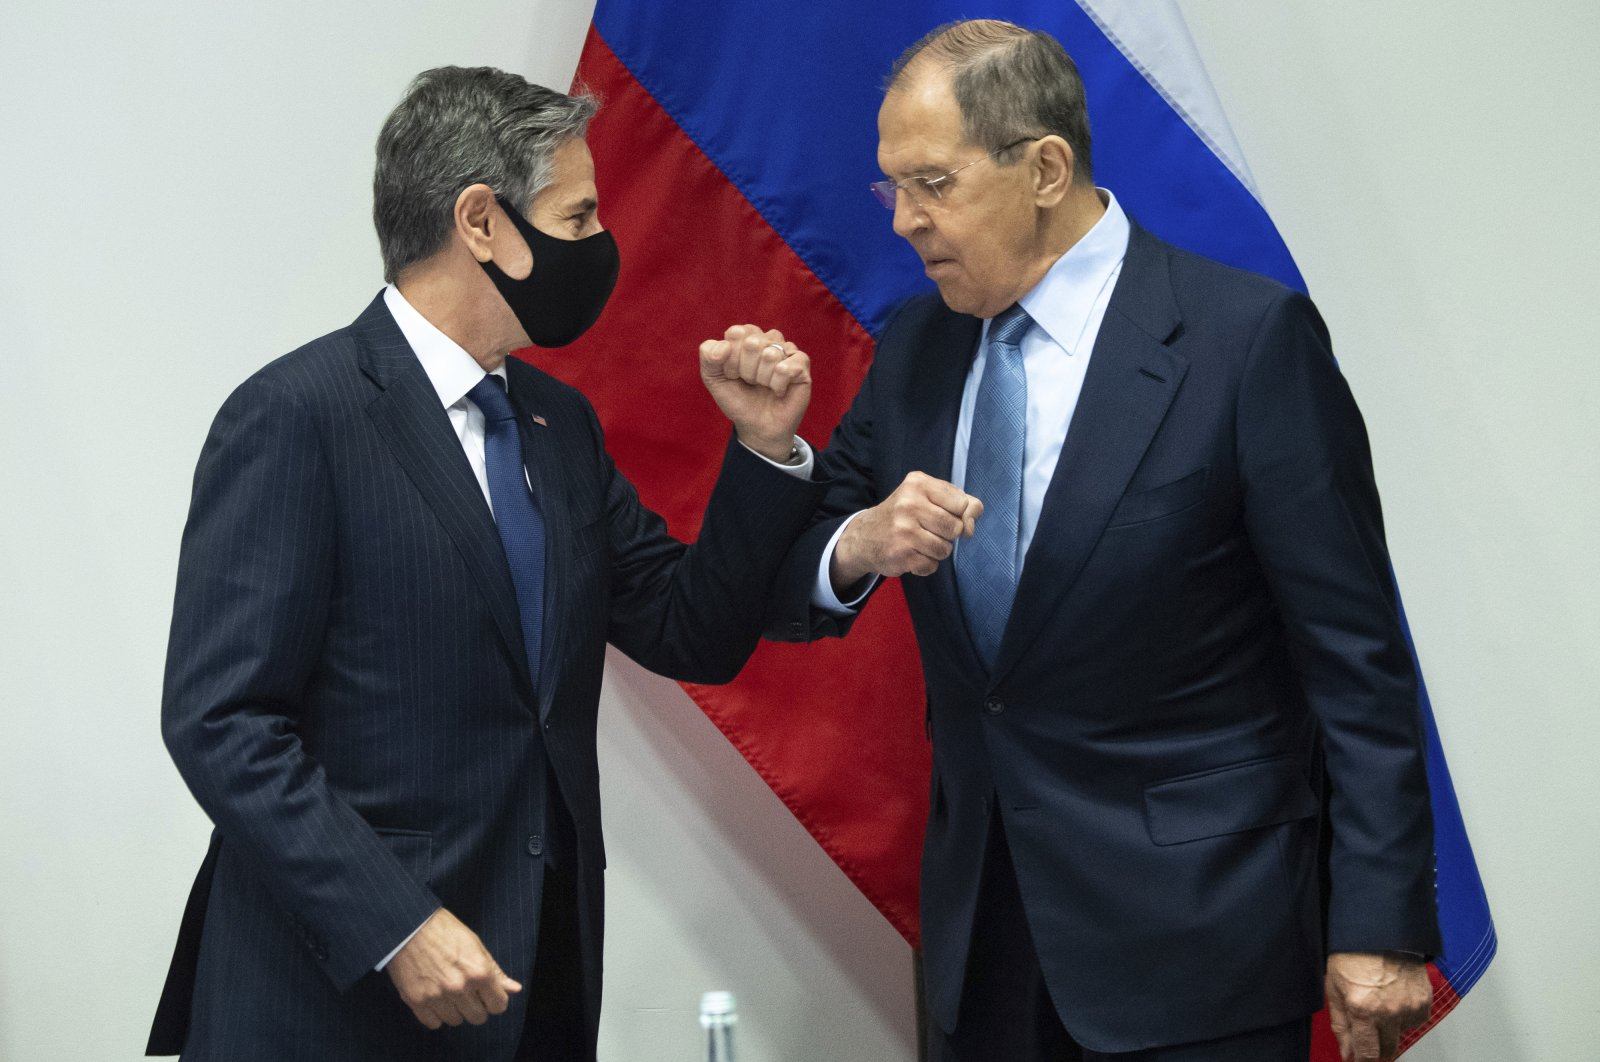 U.S. Secretary of State Antony Blinken (L) greets Russian Foreign Minister Sergey Lavrov as they arrive for a meeting on the sidelines of the Arctic Council Ministerial Summit at the Harpa Concert Hall in Reykjavik, Iceland, May 19, 2021. (AP Photo)